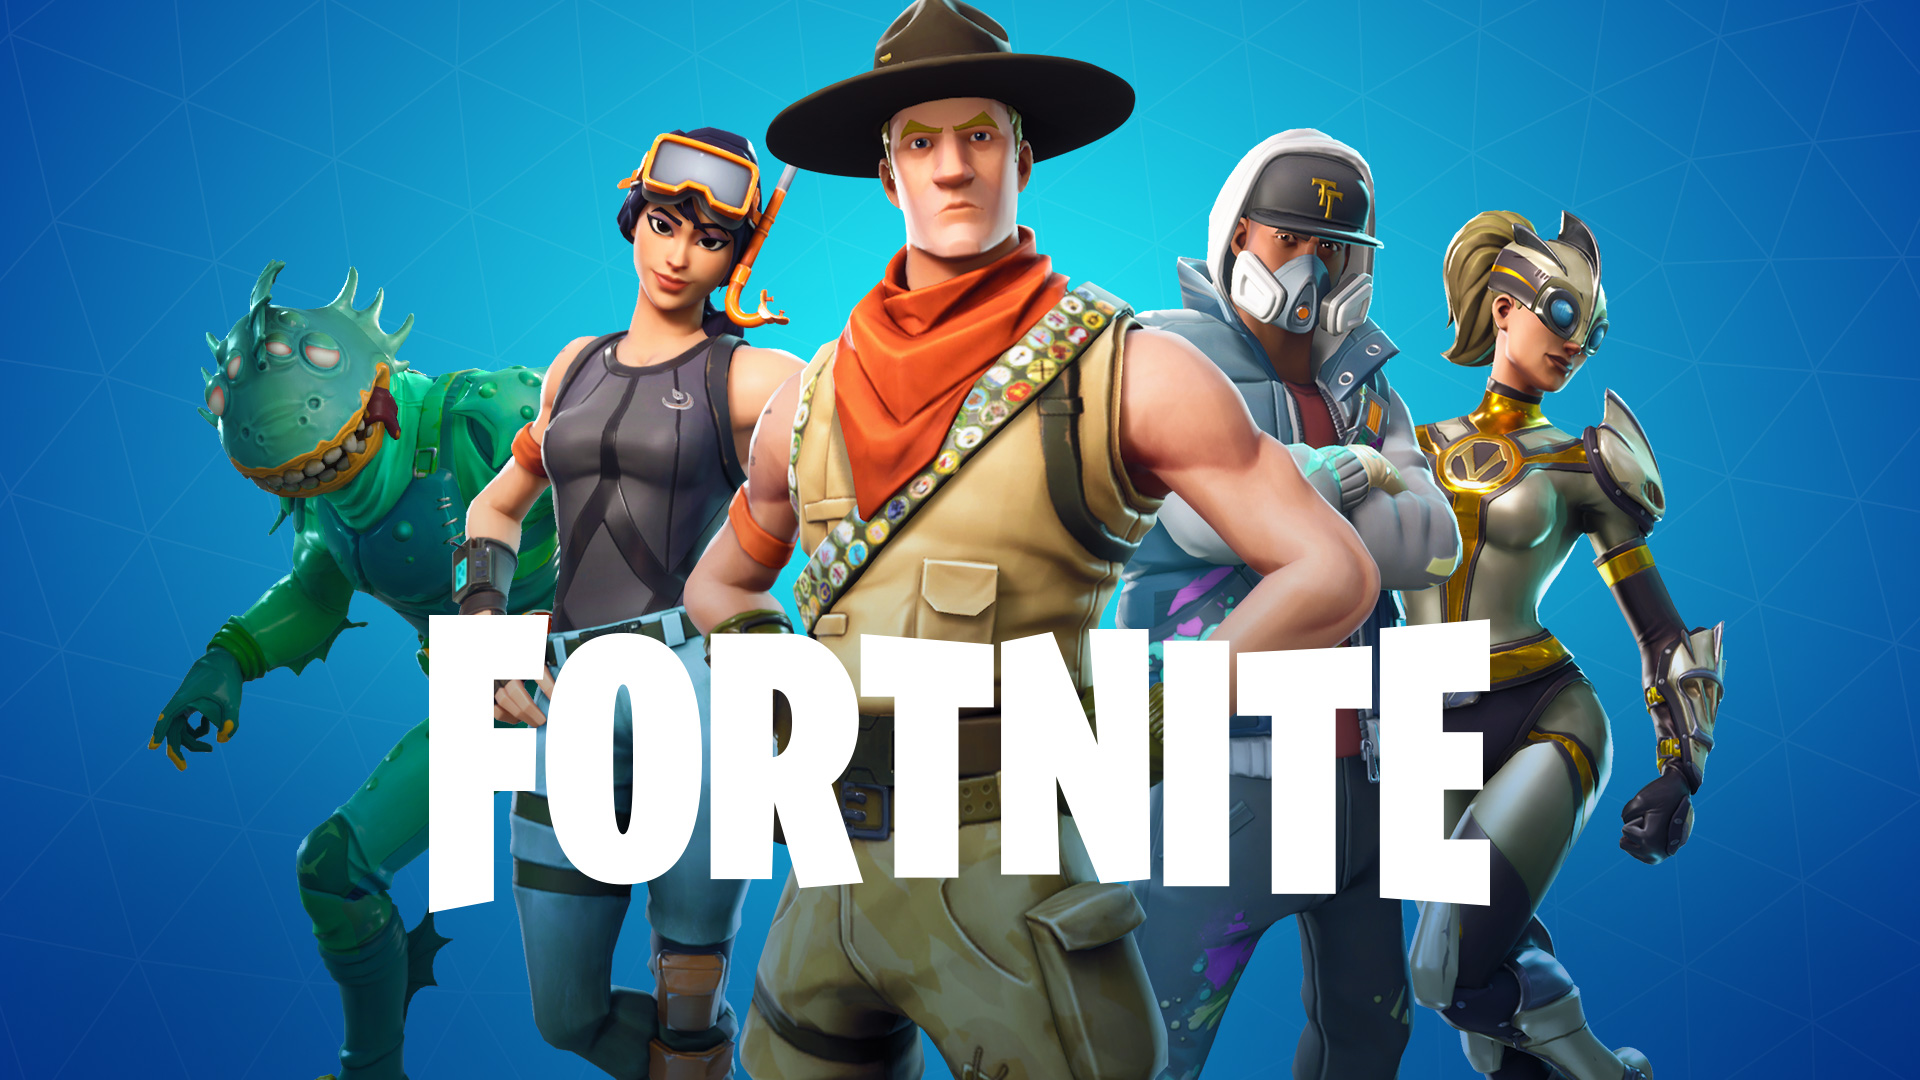 fornite in education logo